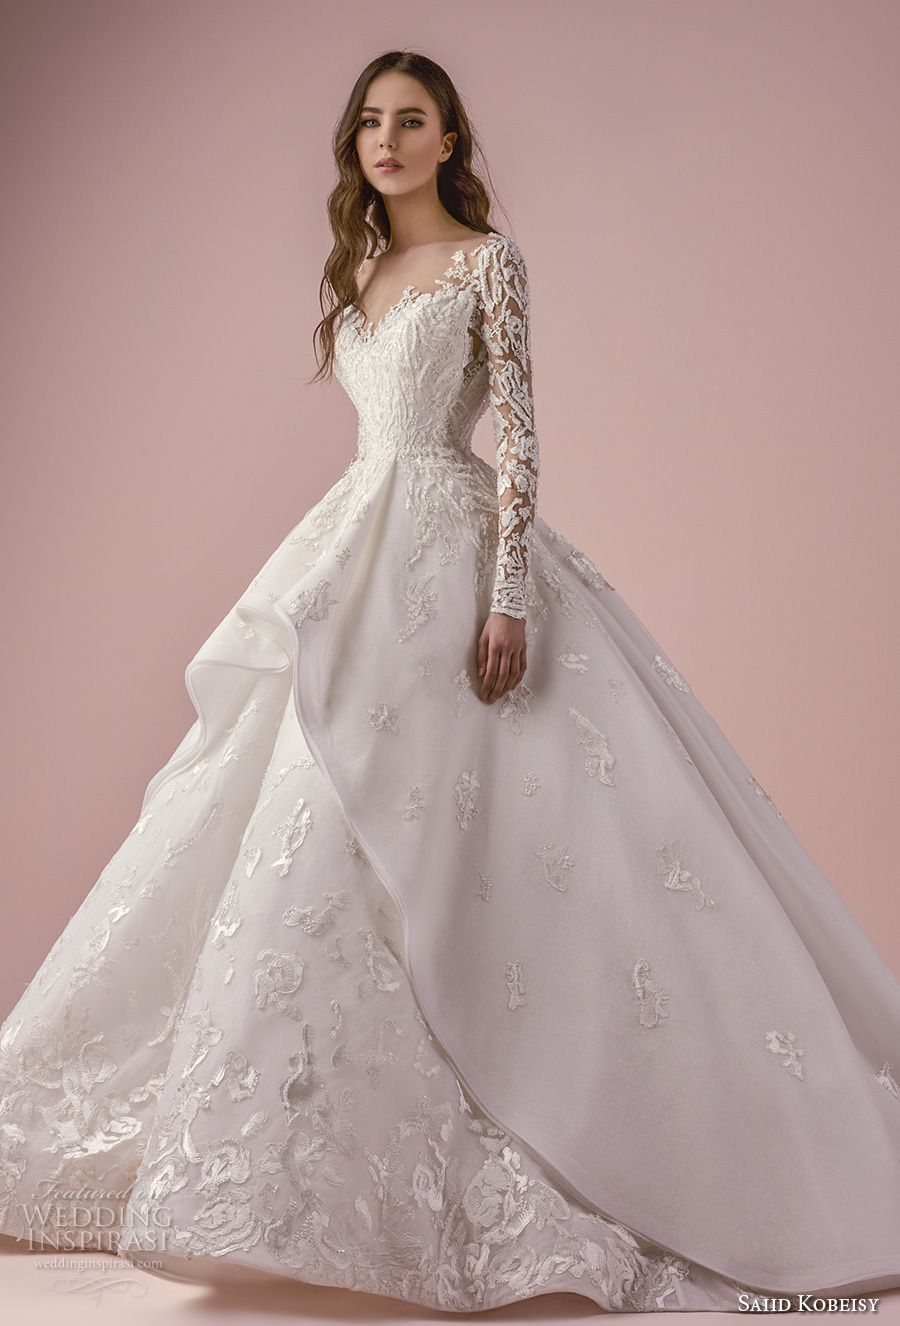 748ee7461dd1 saiid kobeisy 2018 bridal long sleeves v neck heavily embellished bodice  romantic princess layered skirt ball gown wedding dress chapel train (3265)  mv ...